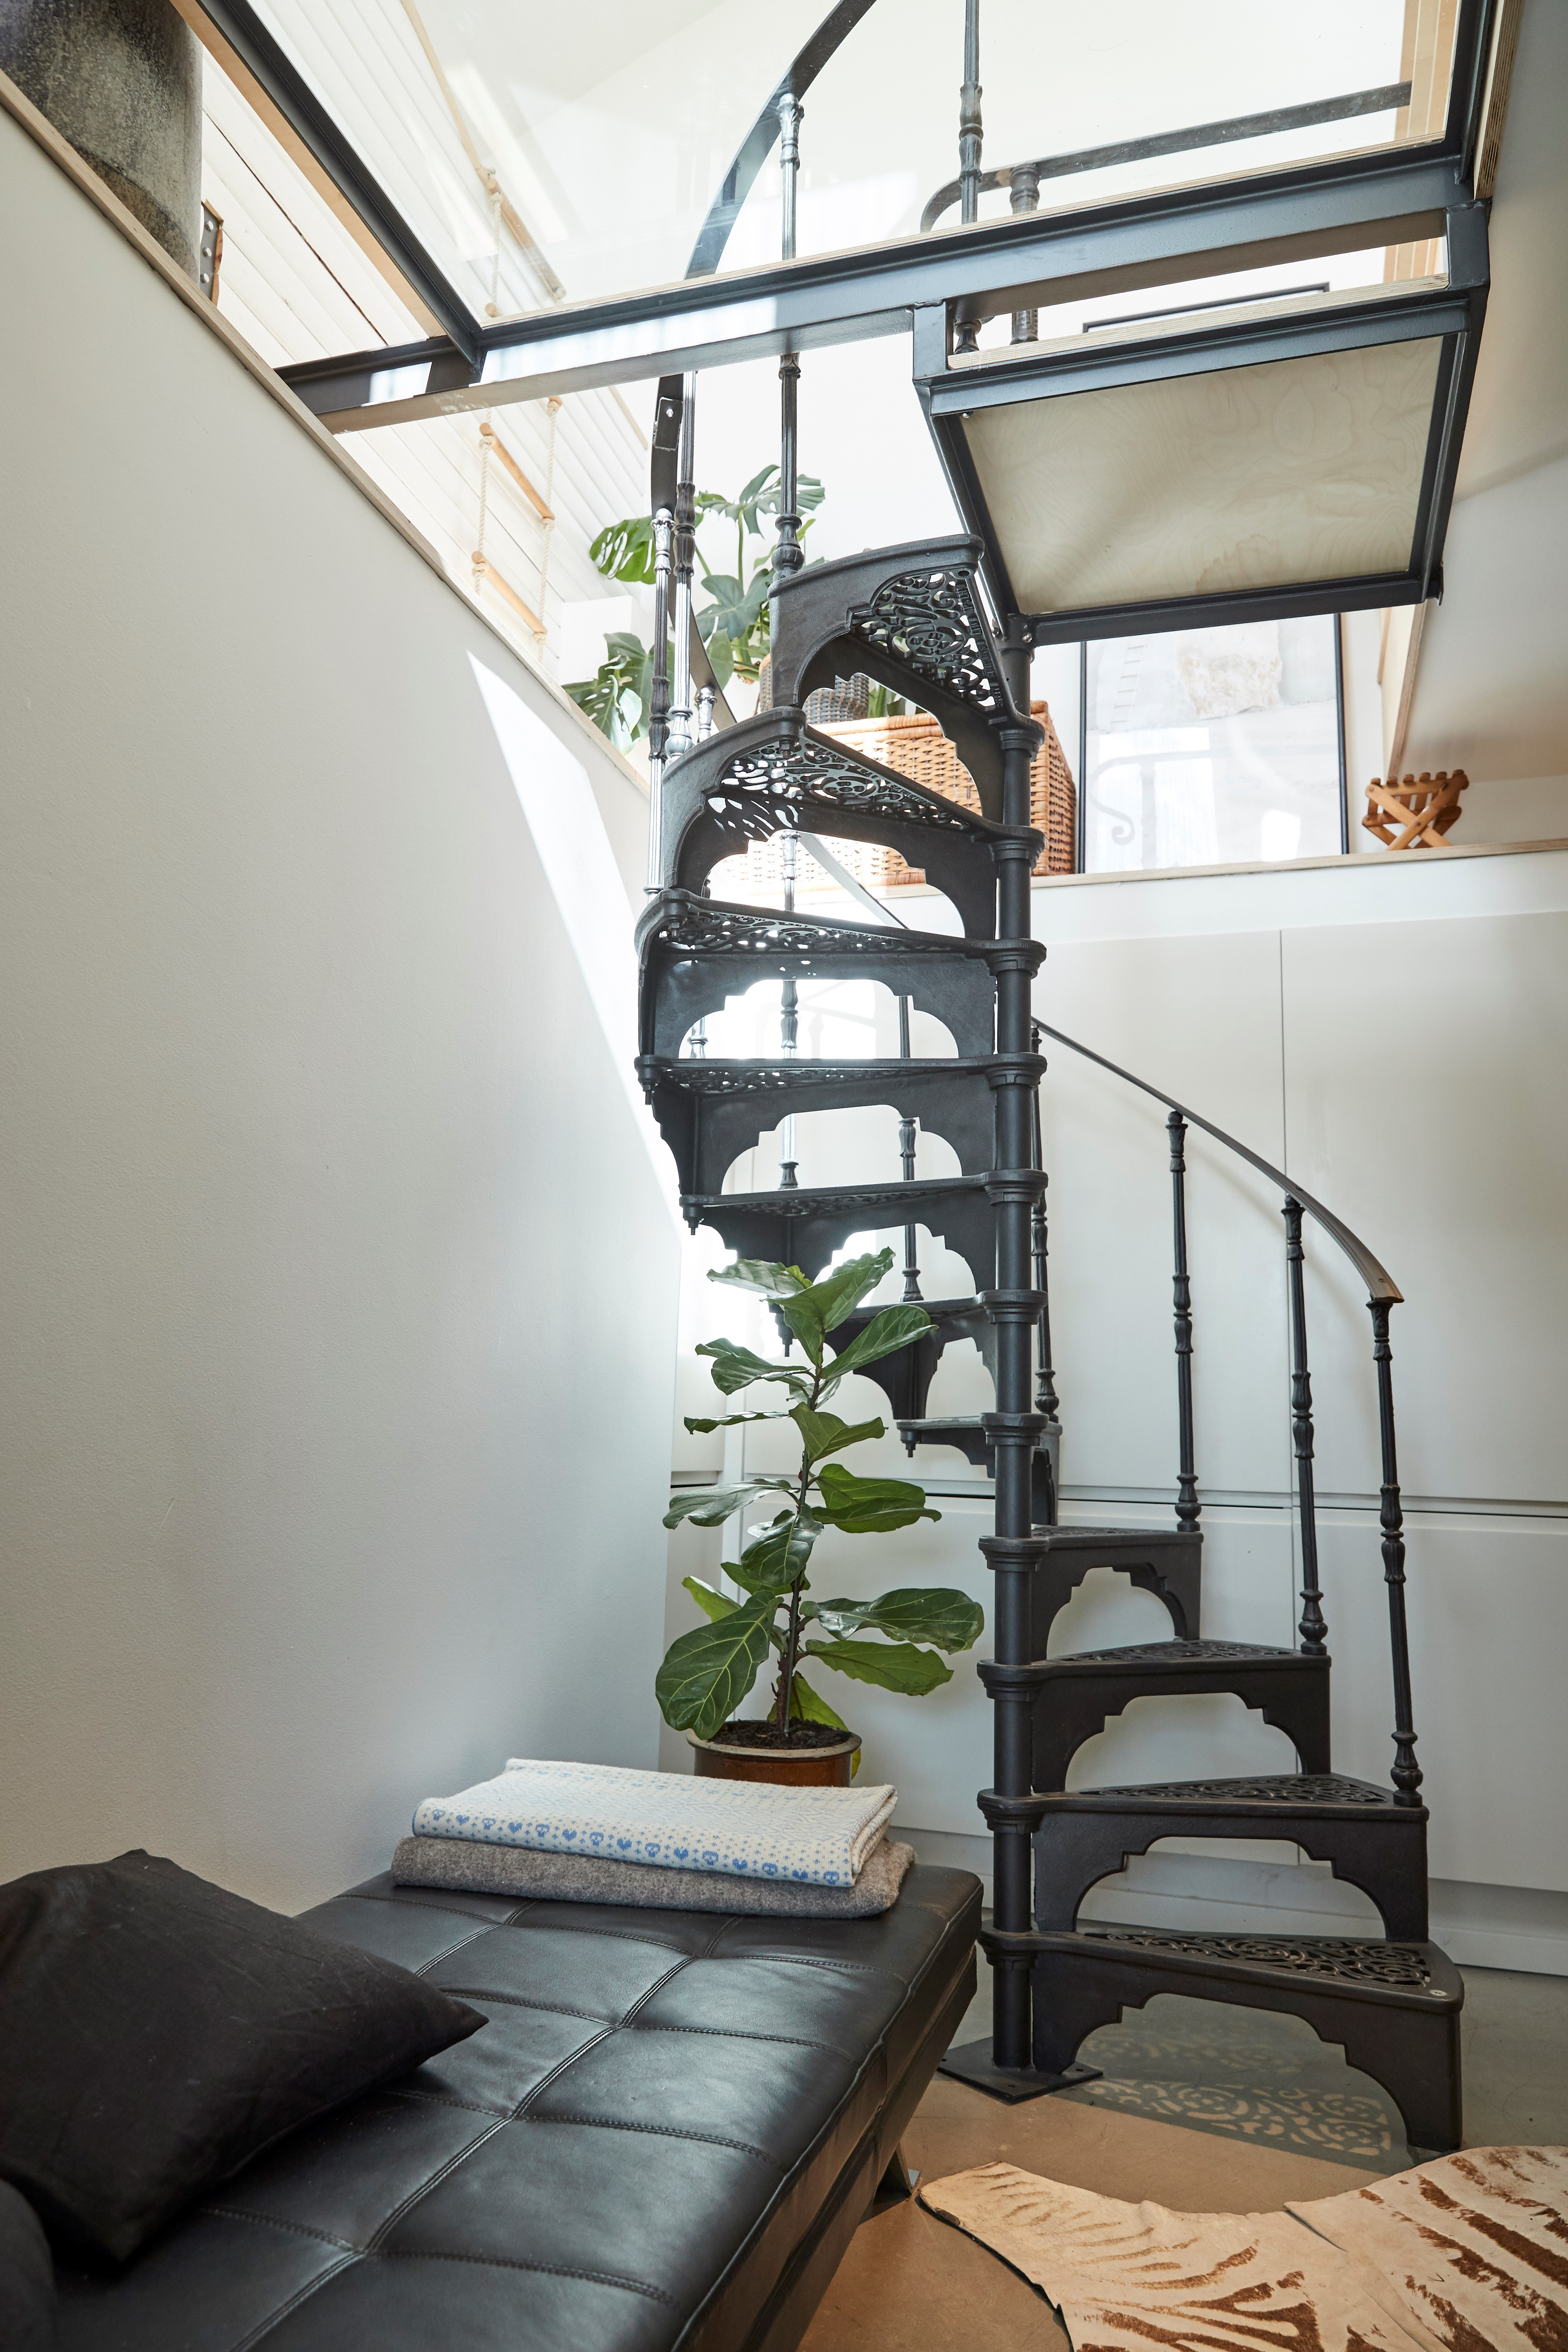 Spiral Staircase And Stairs For Sale In The Uk | Spiral Staircase For Sale